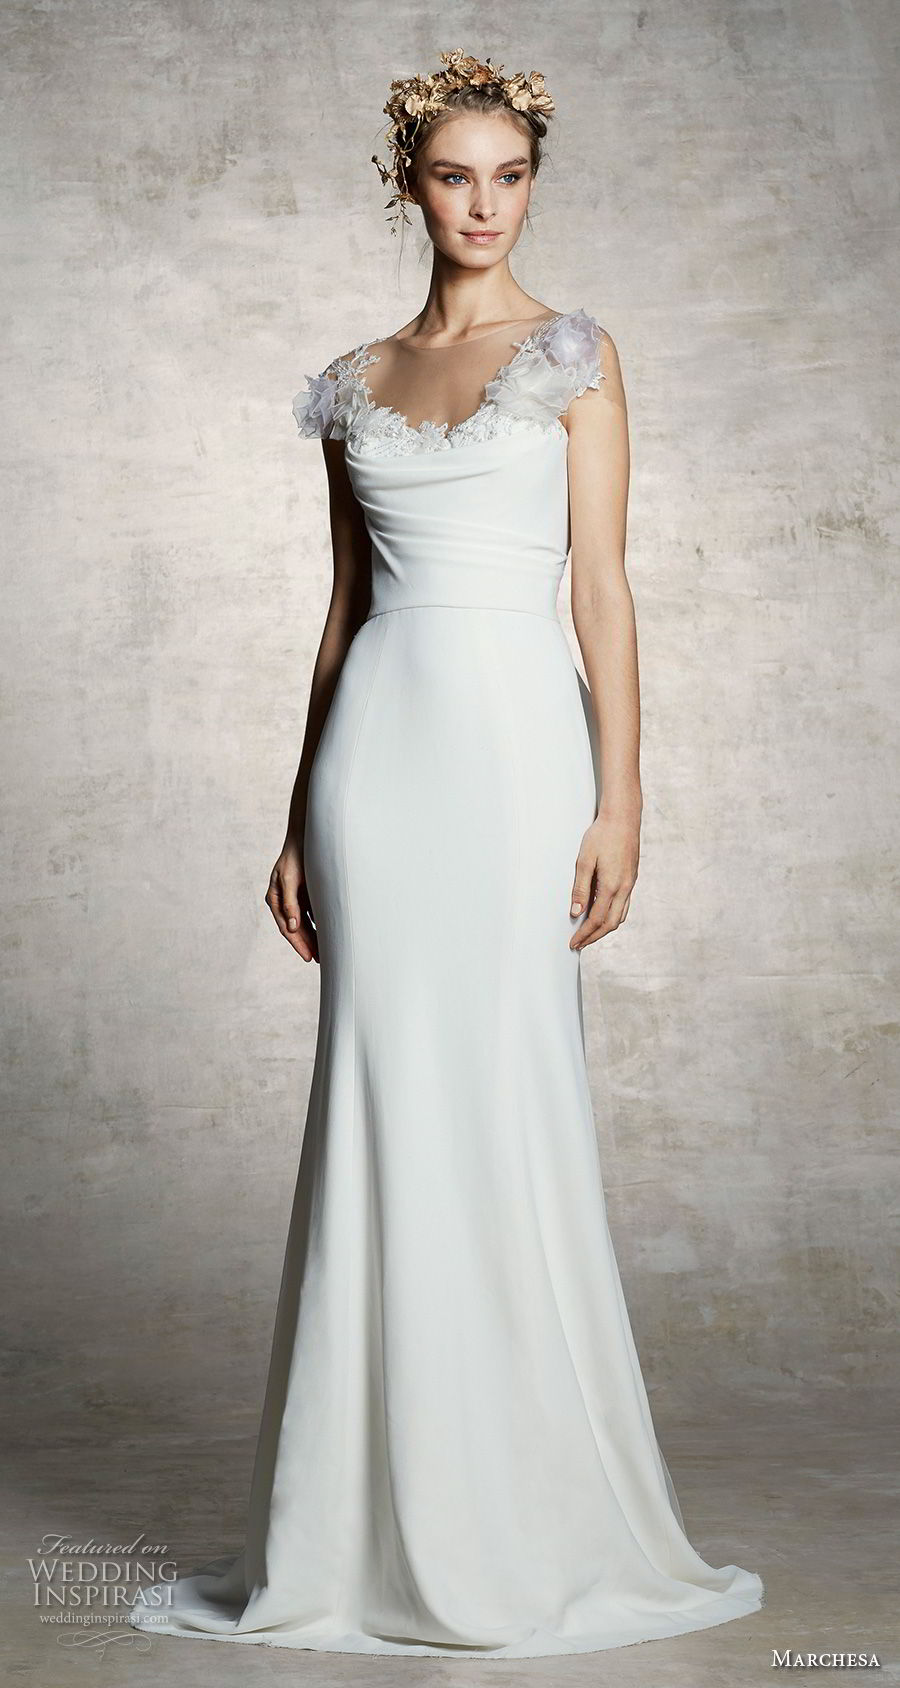 marchesa spring 2019 bridal sheer cap sleeves illusion bateau scoop neckline simple minimalist elegant trumpet wedding dress sweep train (11) mv